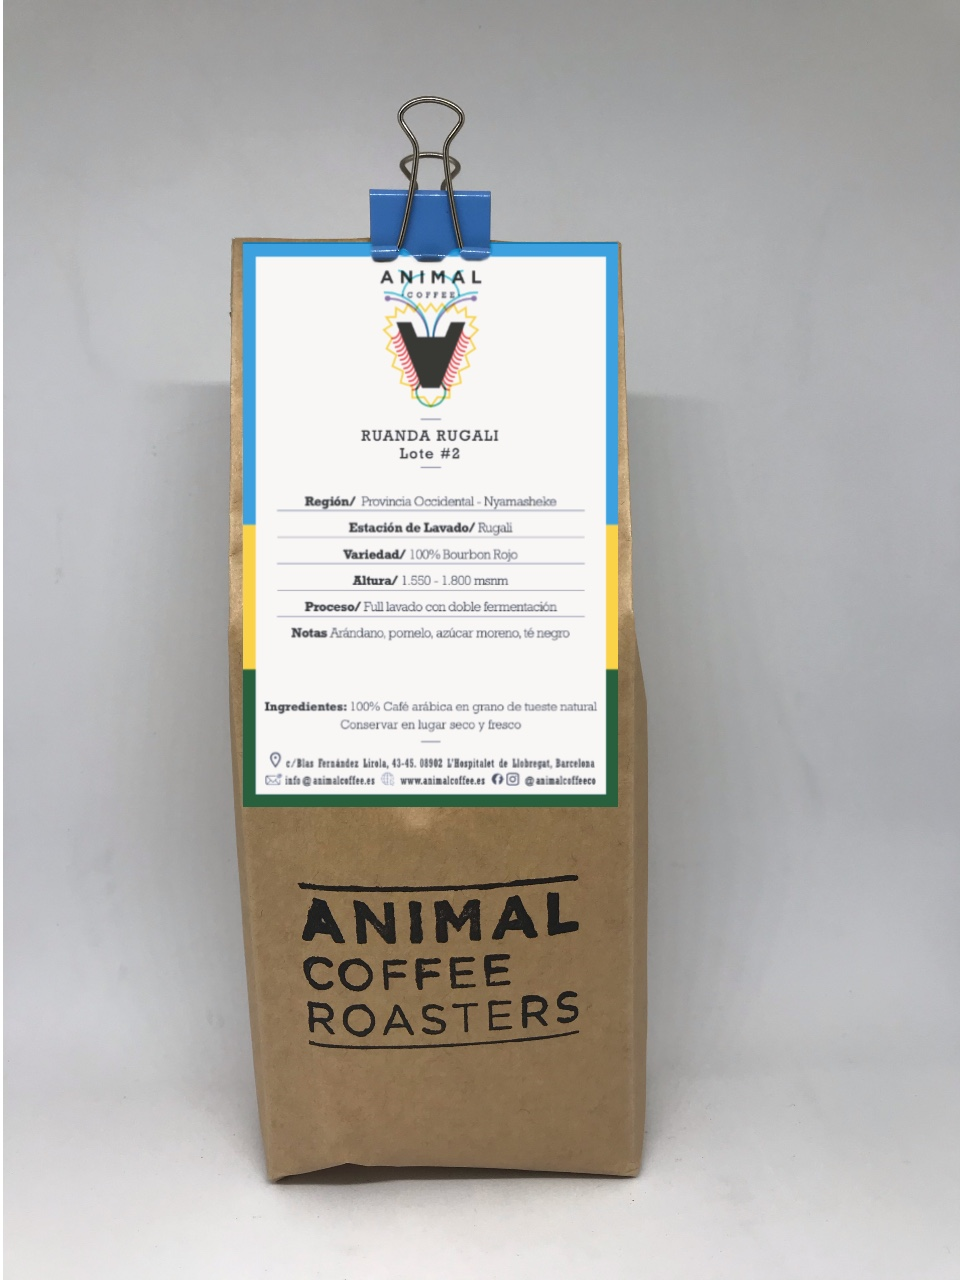 specialty coffee Ruanda Rugali. Roasted by Animal Coffee